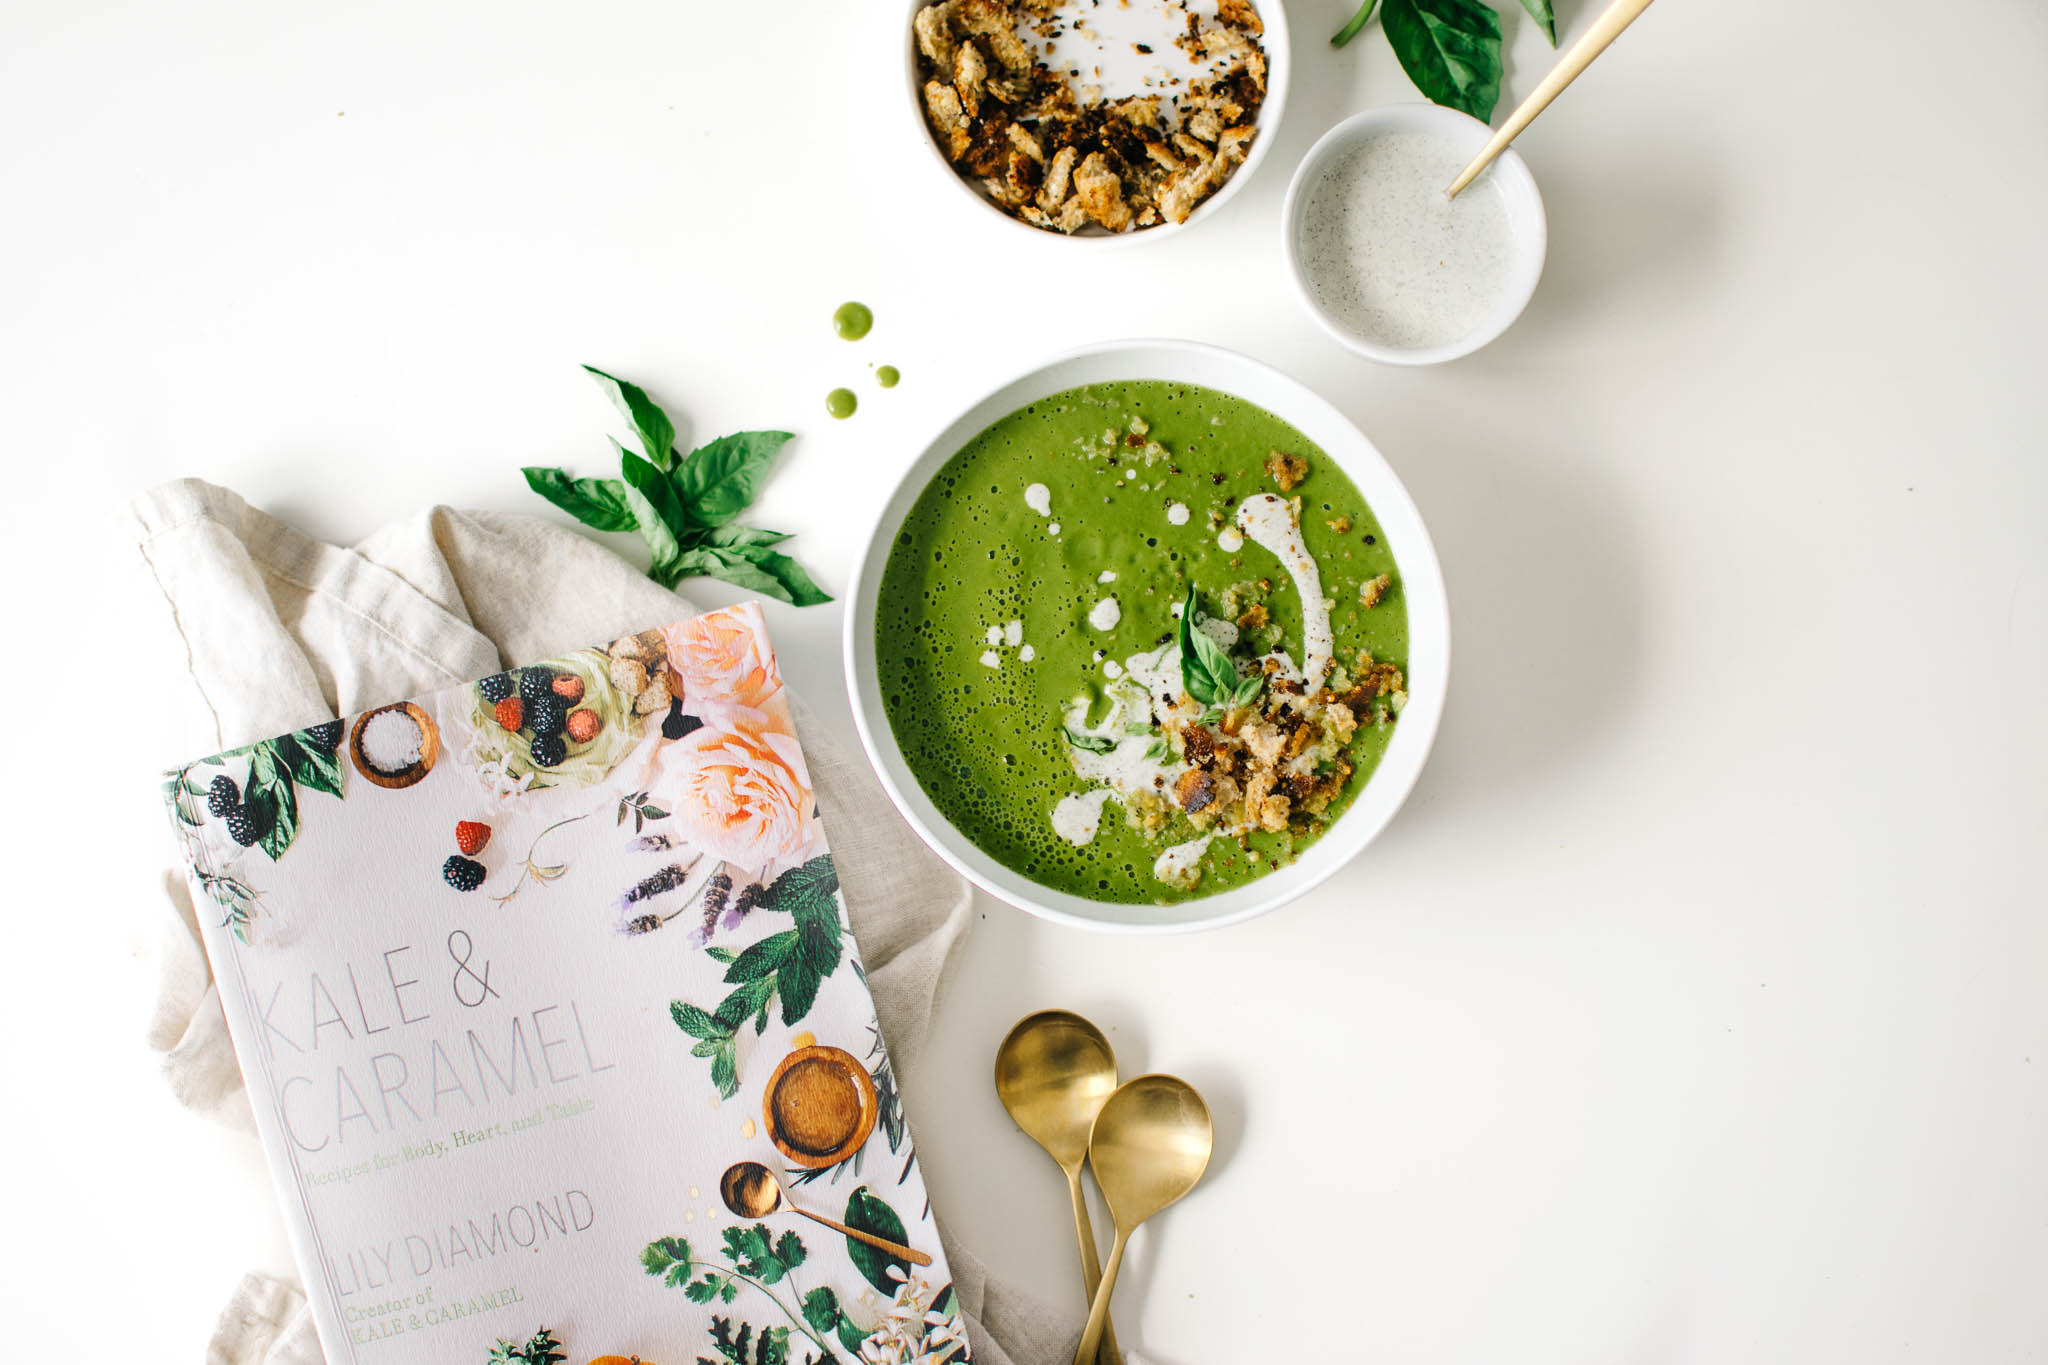 Zucchini basil soup from kale caramel cookbook a vitamix zucchini basil soup from kale caramel cookbook a vitamix giveaway forumfinder Choice Image